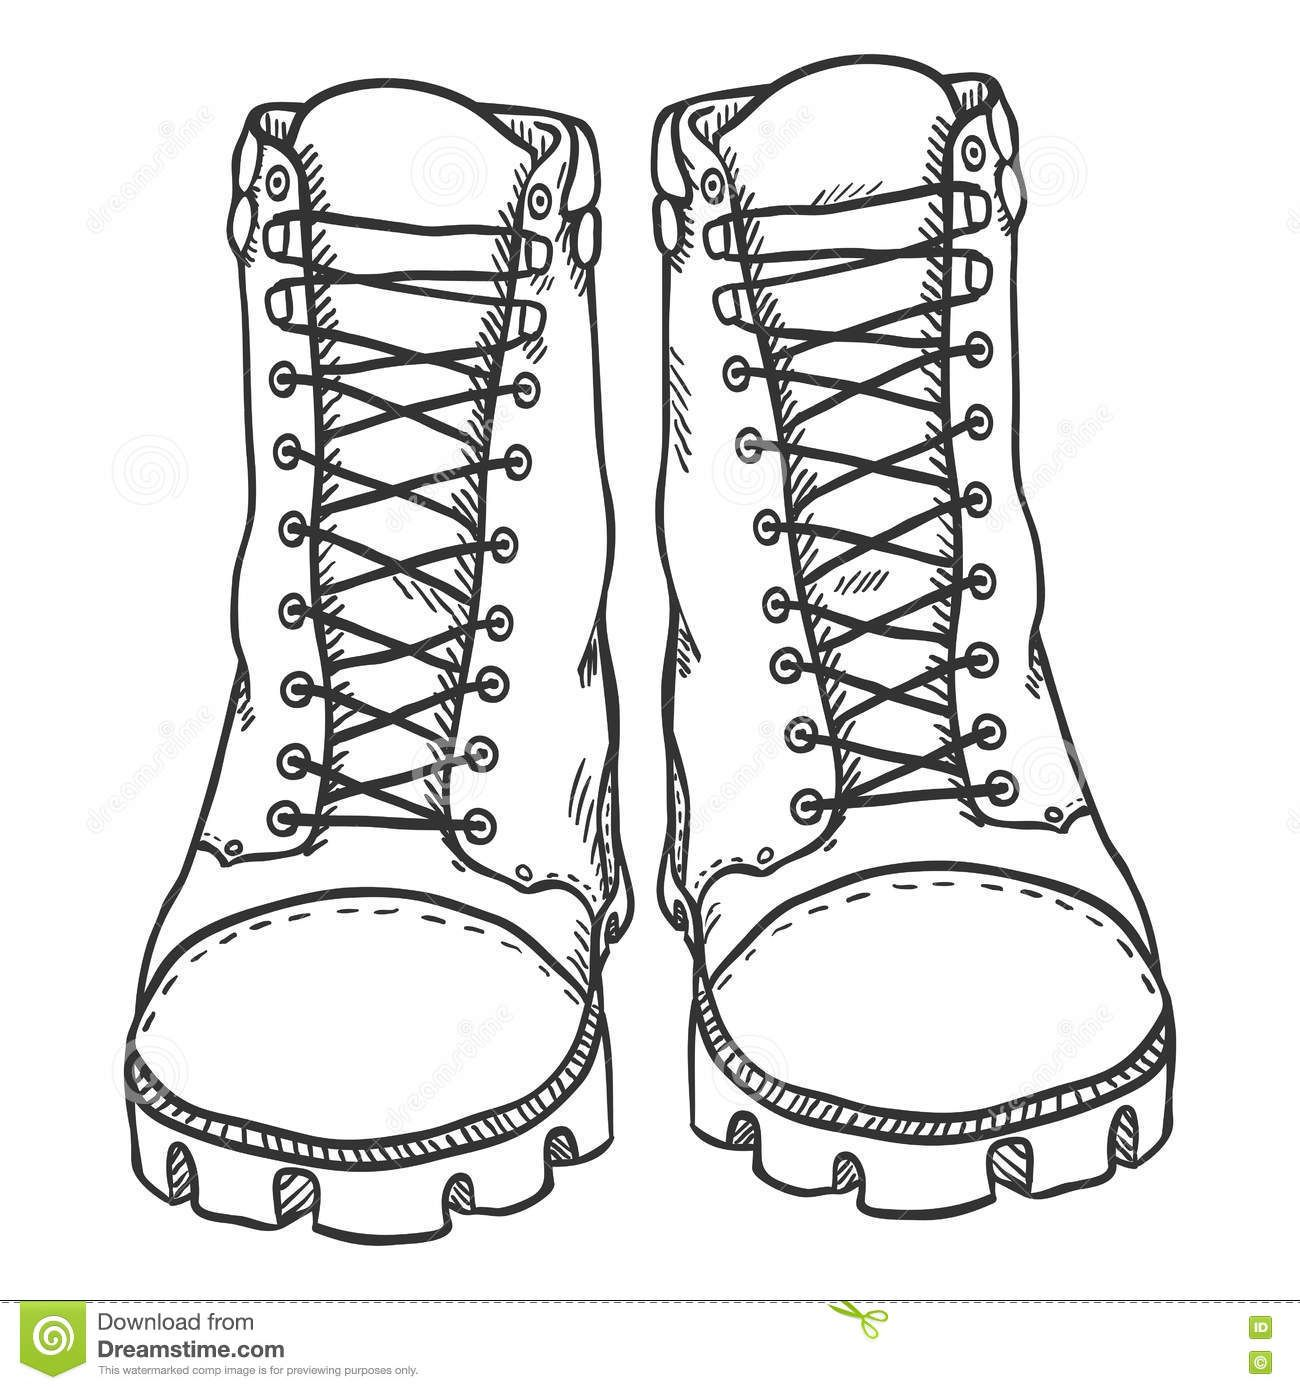 Image result for drawing of hiking boots front view